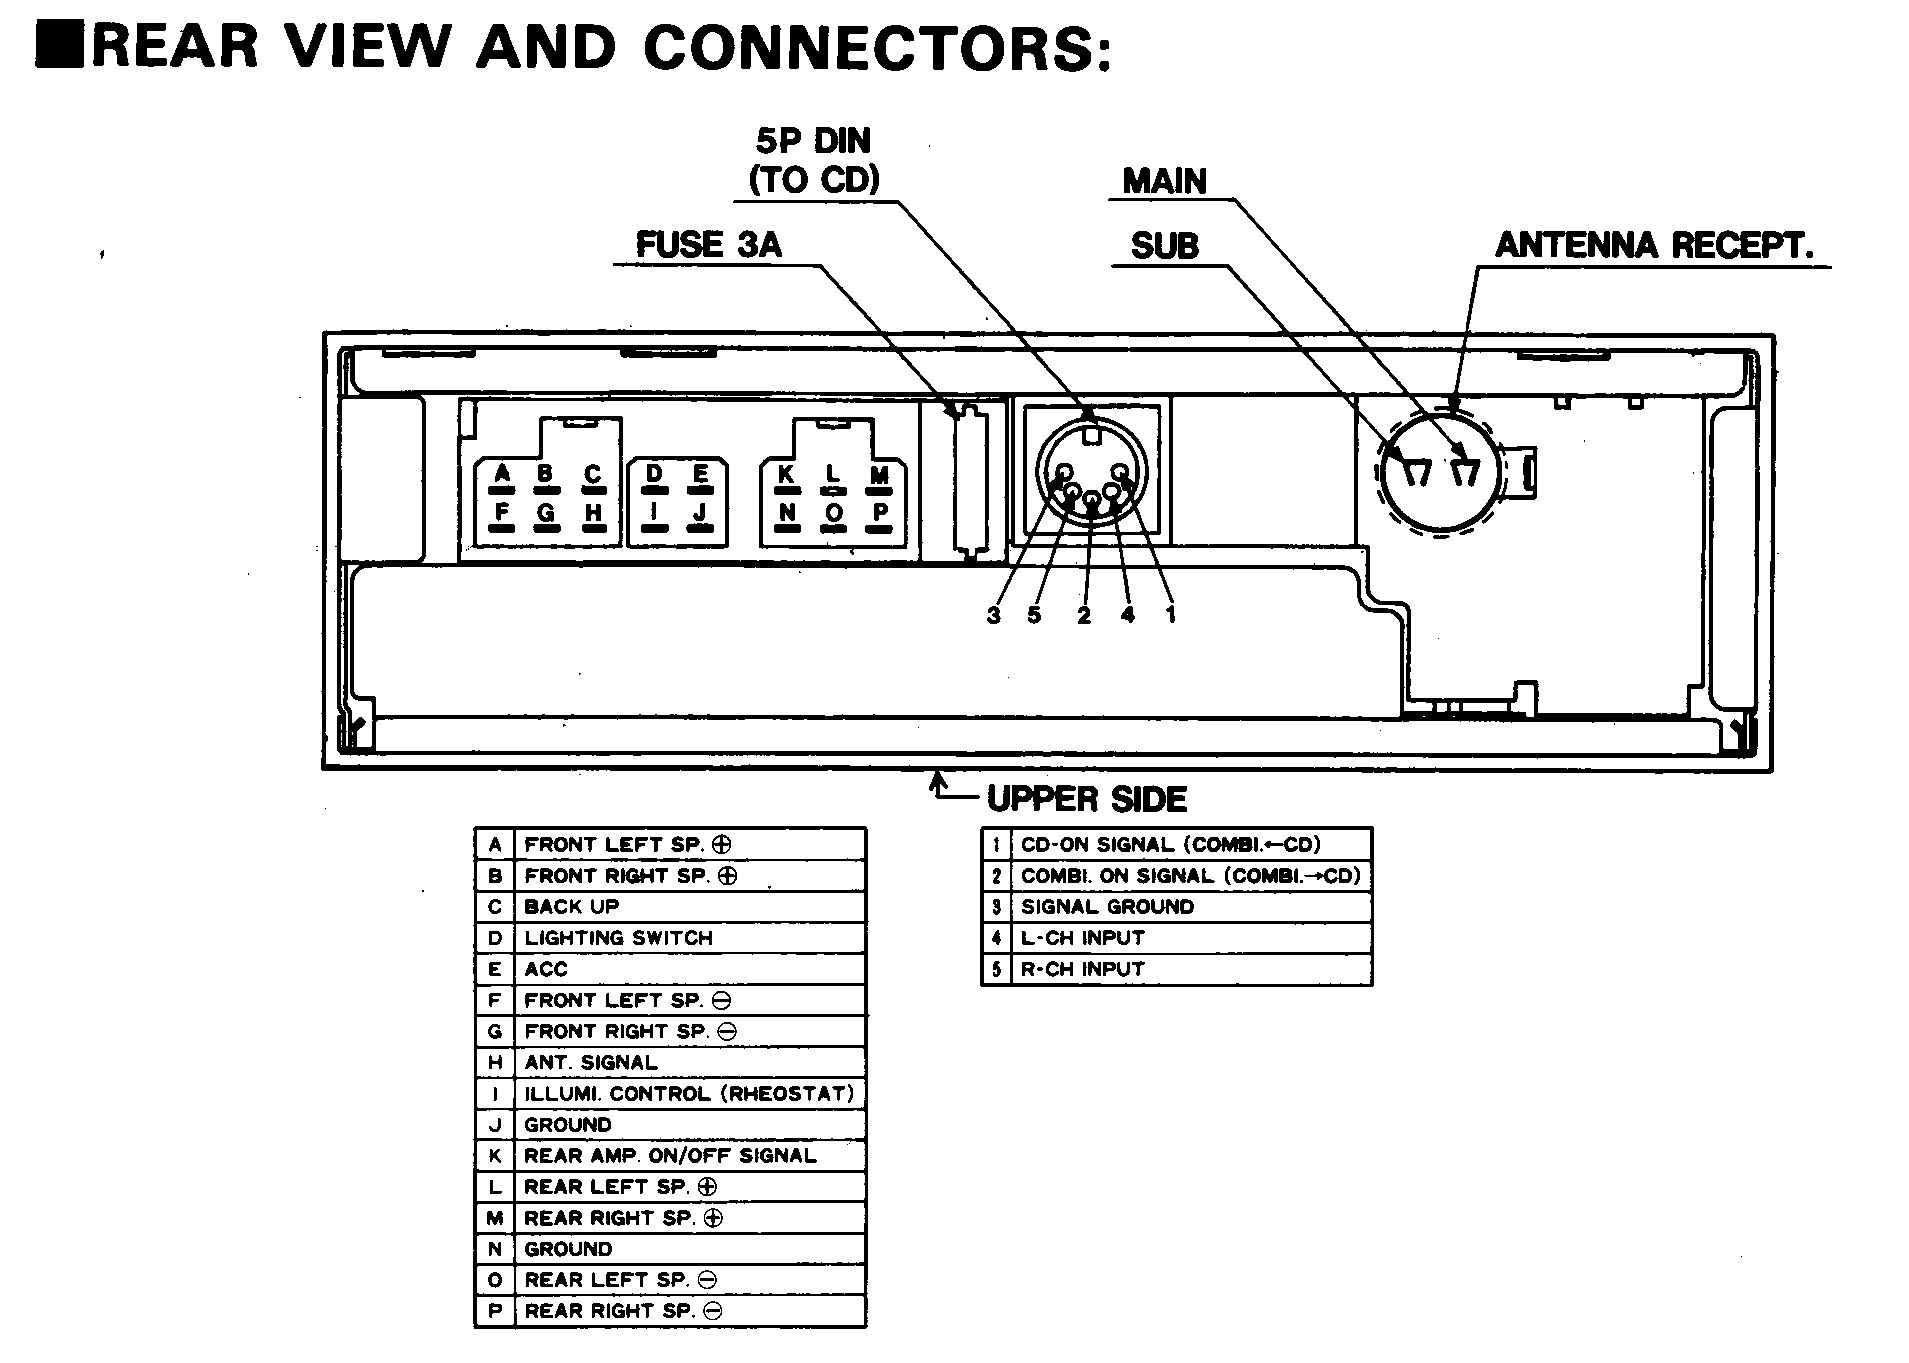 Bose Headphone Wiring Diagram Stereo Speaker Schematics Car Diagrams Nissan